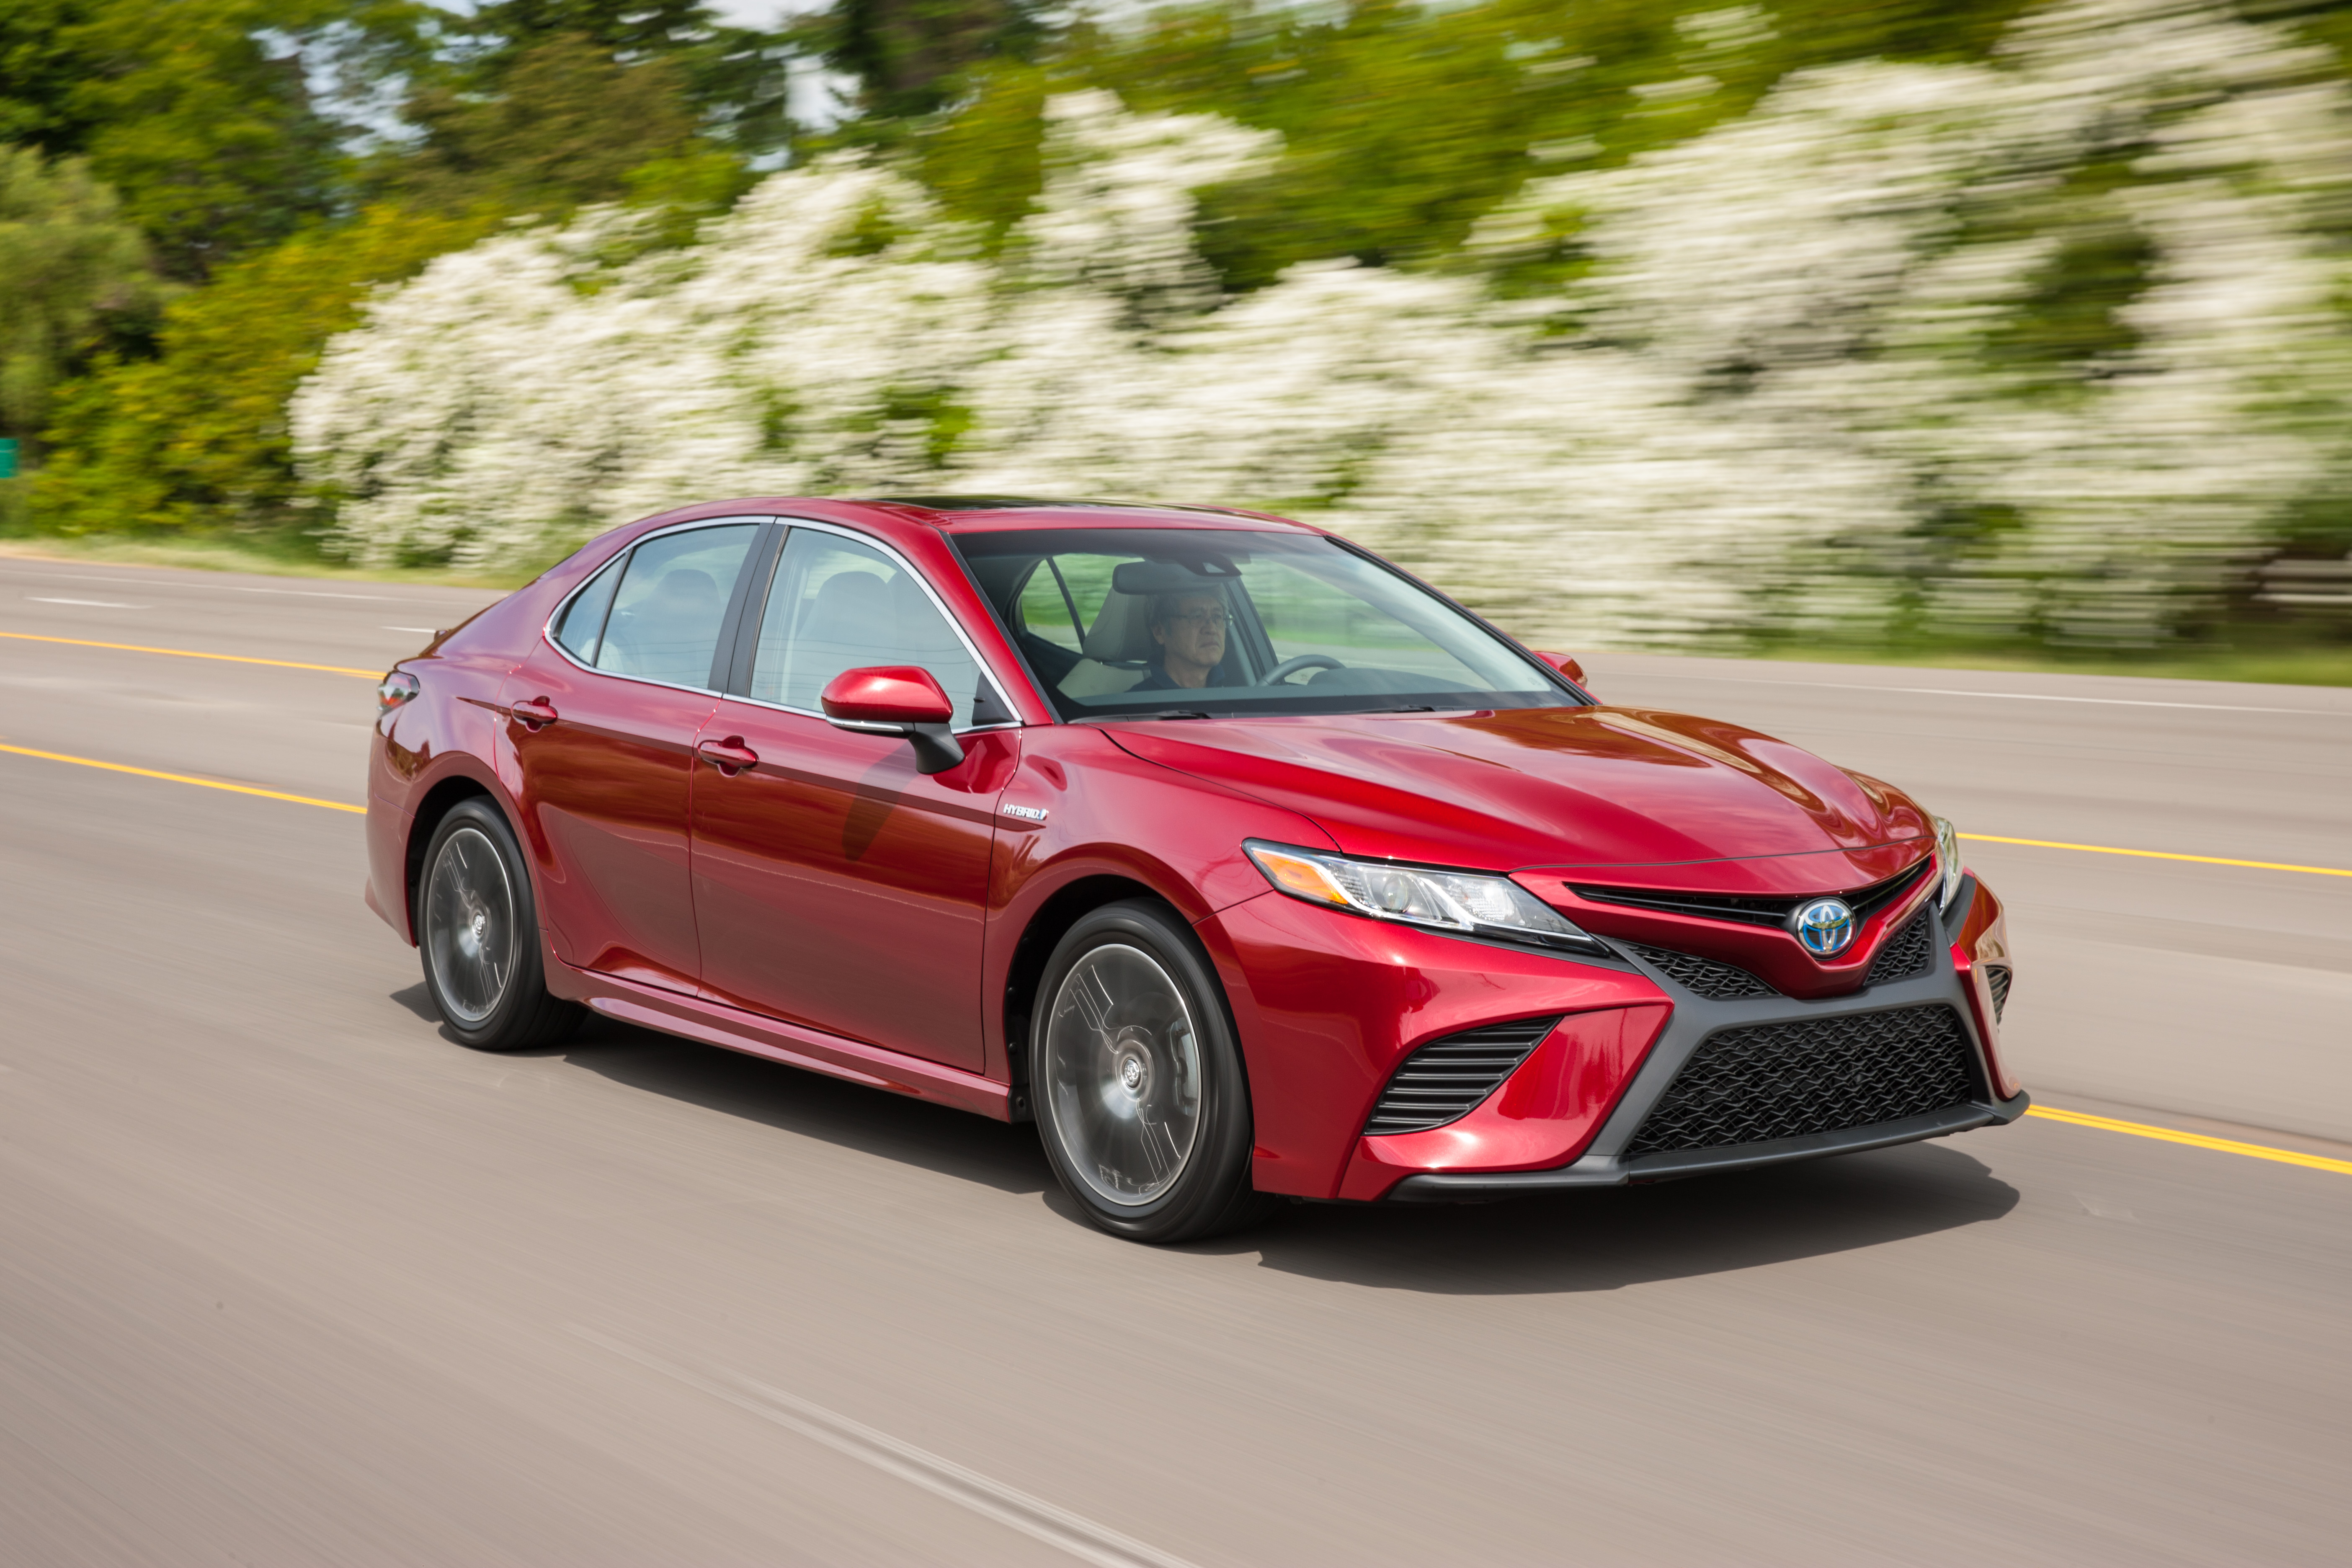 all new camry vs accord jok yaris trd 2018 toyota what 39s changed photos caradvice